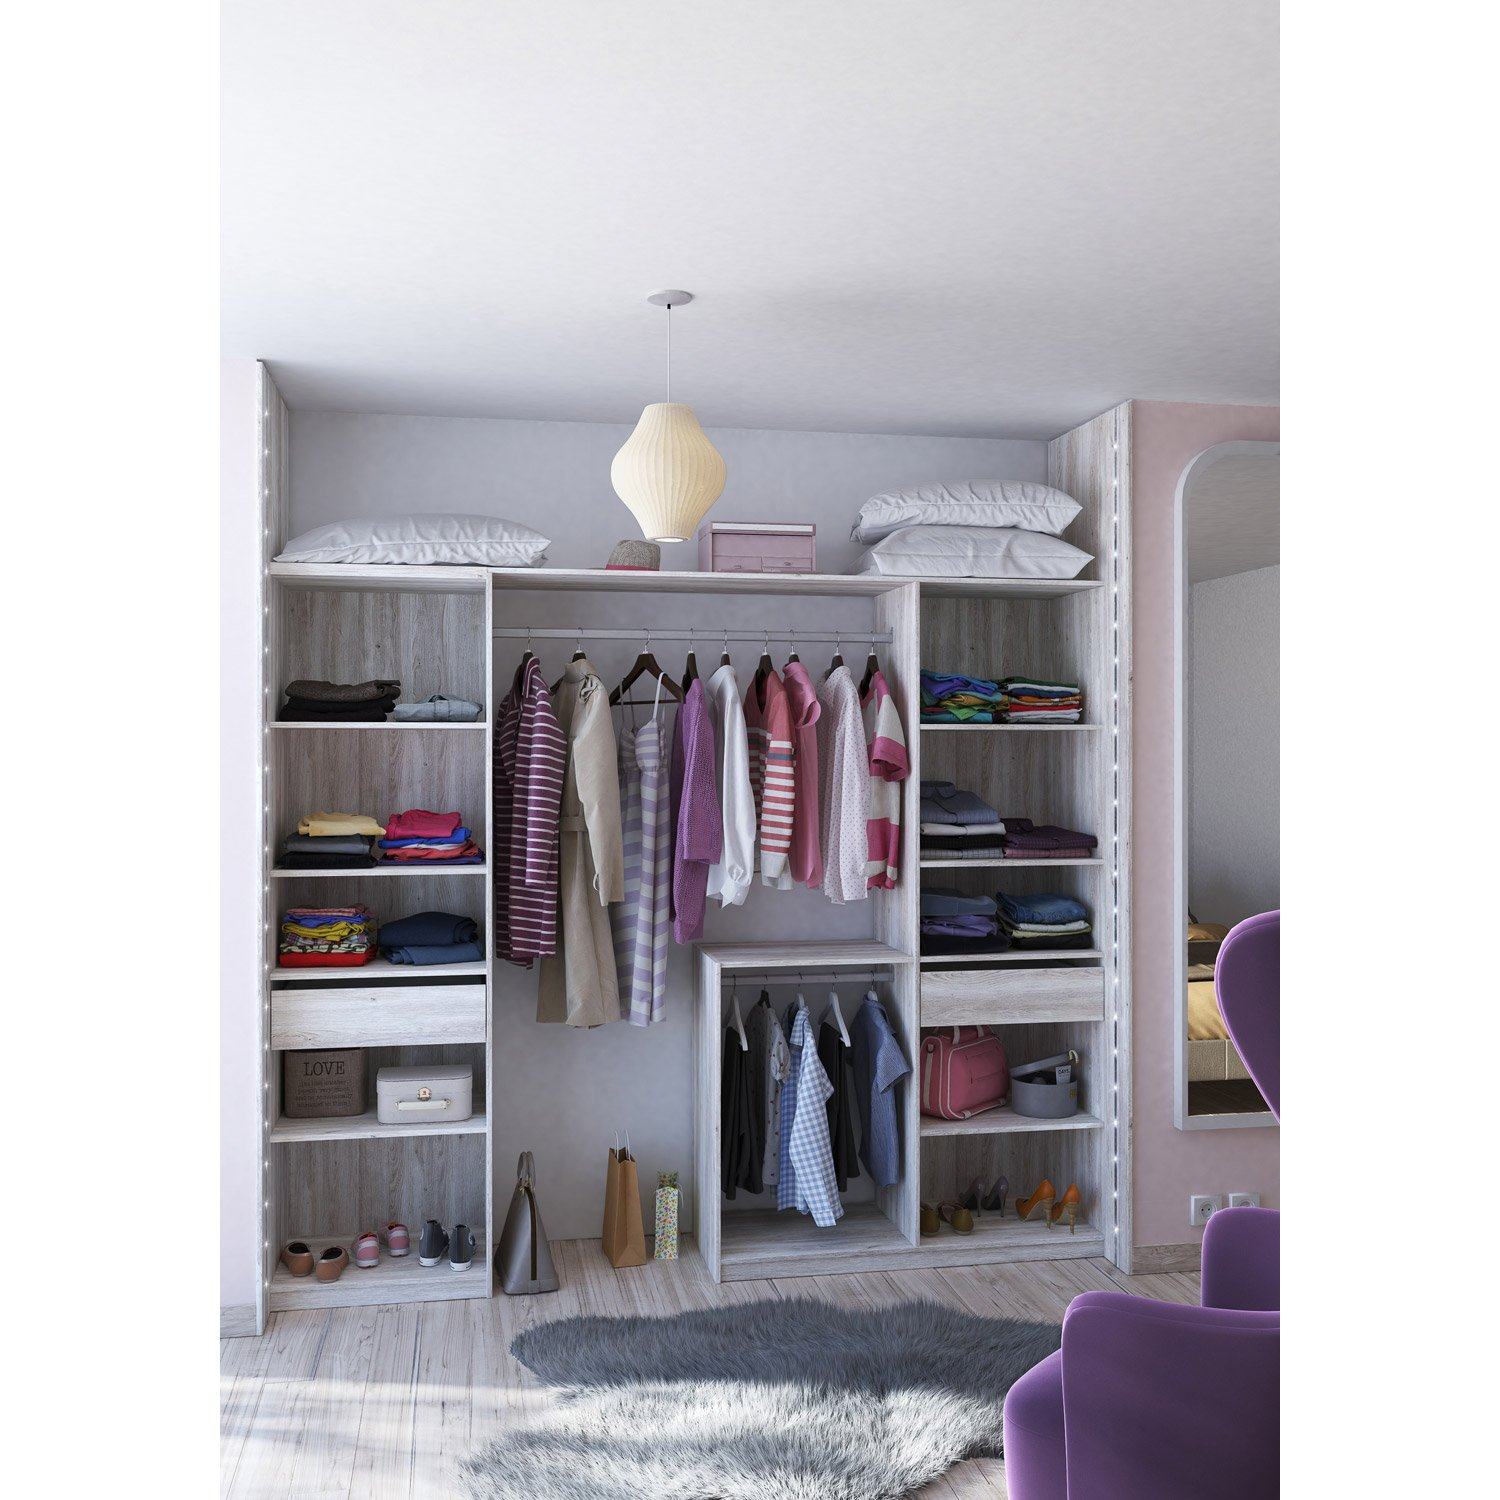 Dressing spaceo home gris dressing leroy merlin - Dressing le roy merlin ...